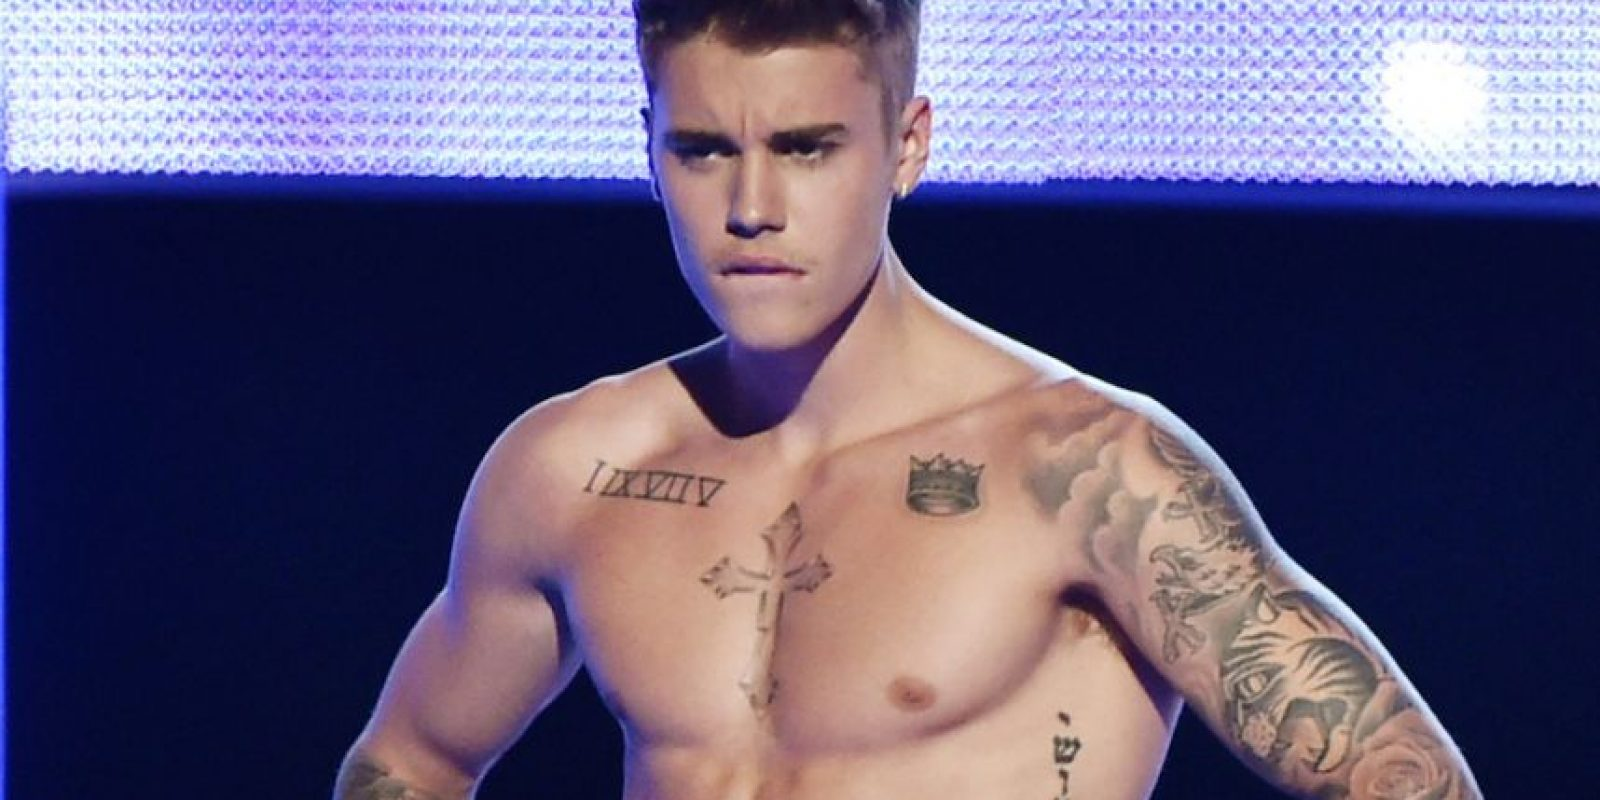 Justin Bieber, cantante canadiense. Foto: Getty Images